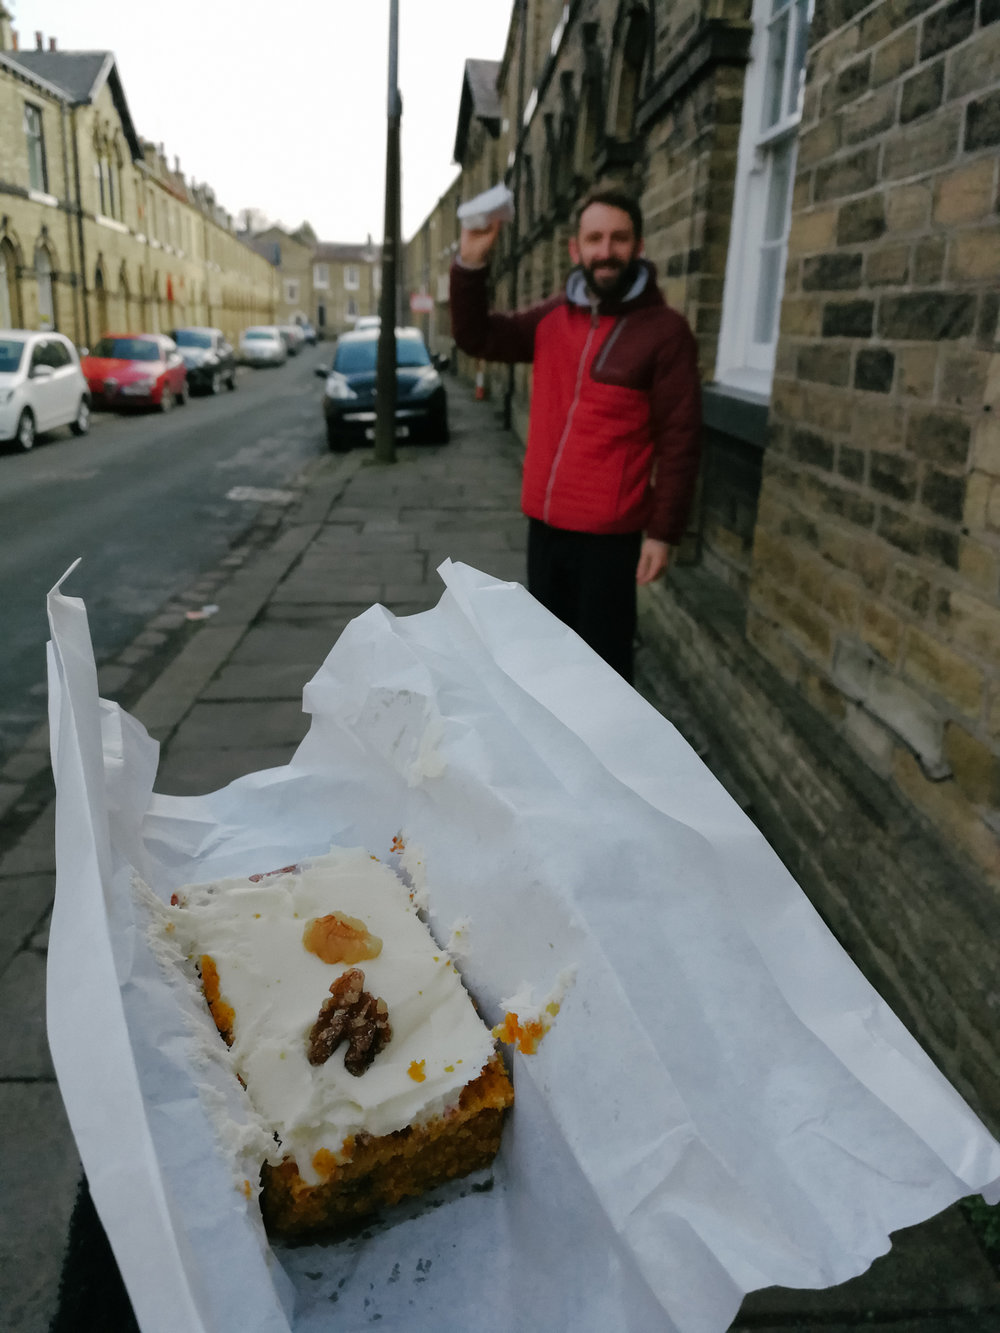 Shop Local - I finally got round to trying a sweet treat from Saltaire based bakery, Edward St Bakery, and it did not disappoint.I am really enjoying getting to know a new town and would love to hear any local reccomendations I should check out!